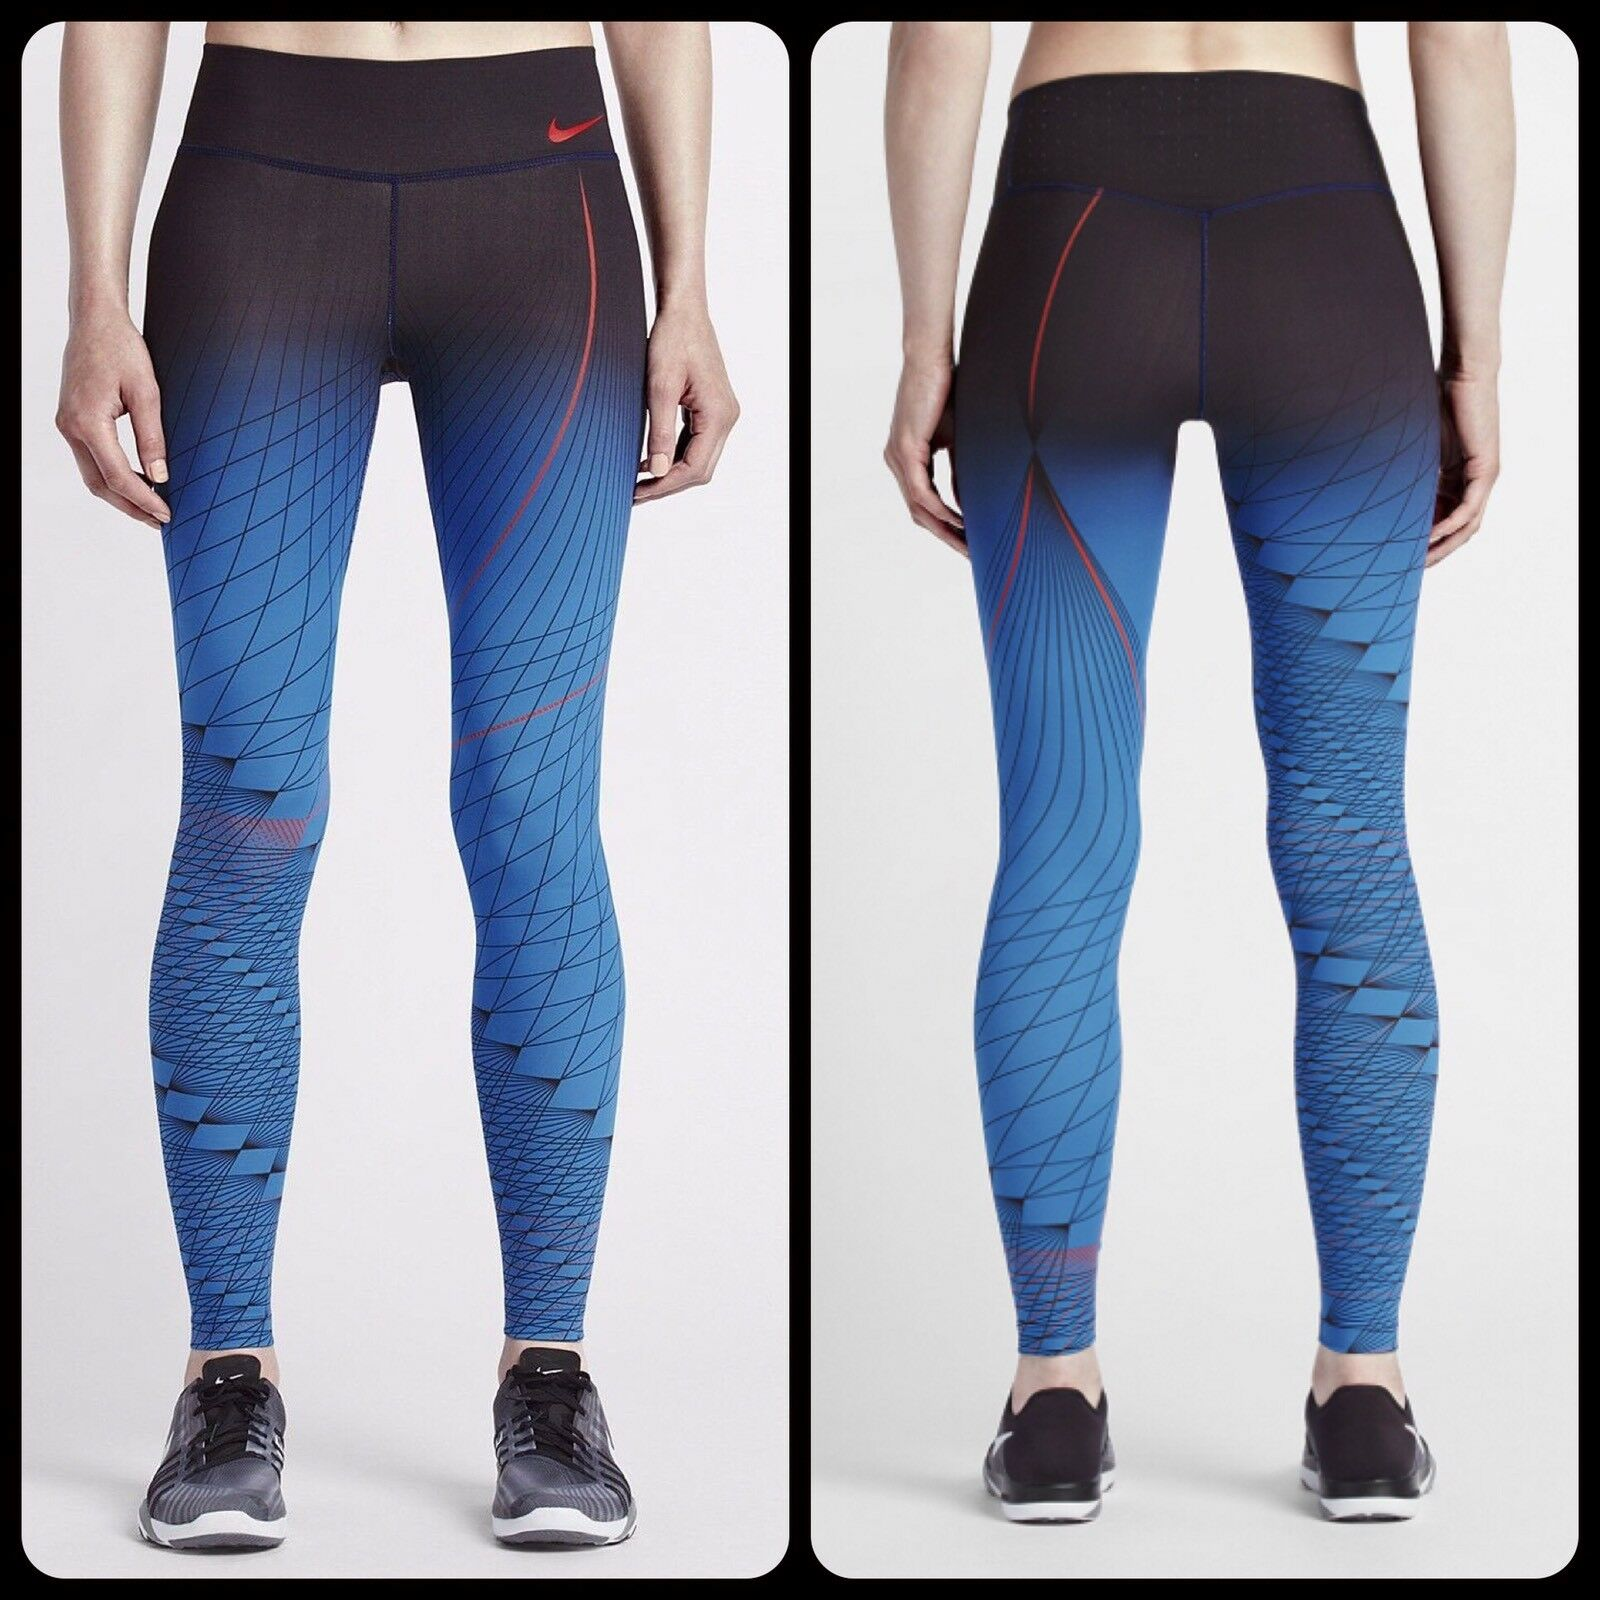 NIKE POWER LEGENDARY TIGHT FIT PRINTED TRAINING TIGHTS 814287 WOMENS S SMALL